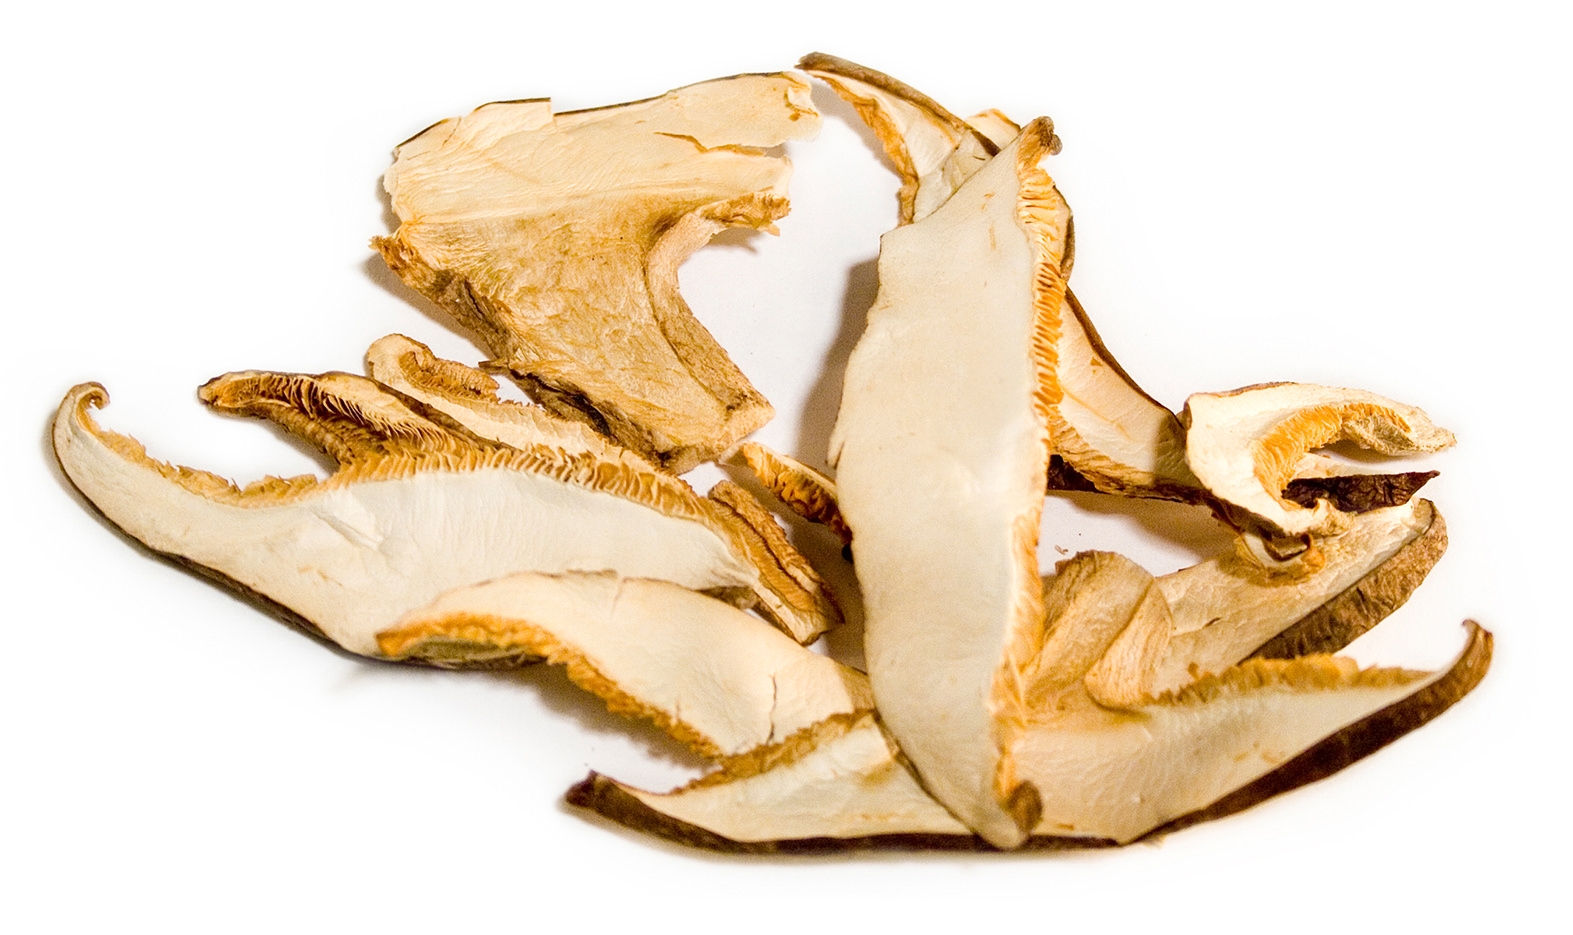 Dried Shiitake Mushrooms Image